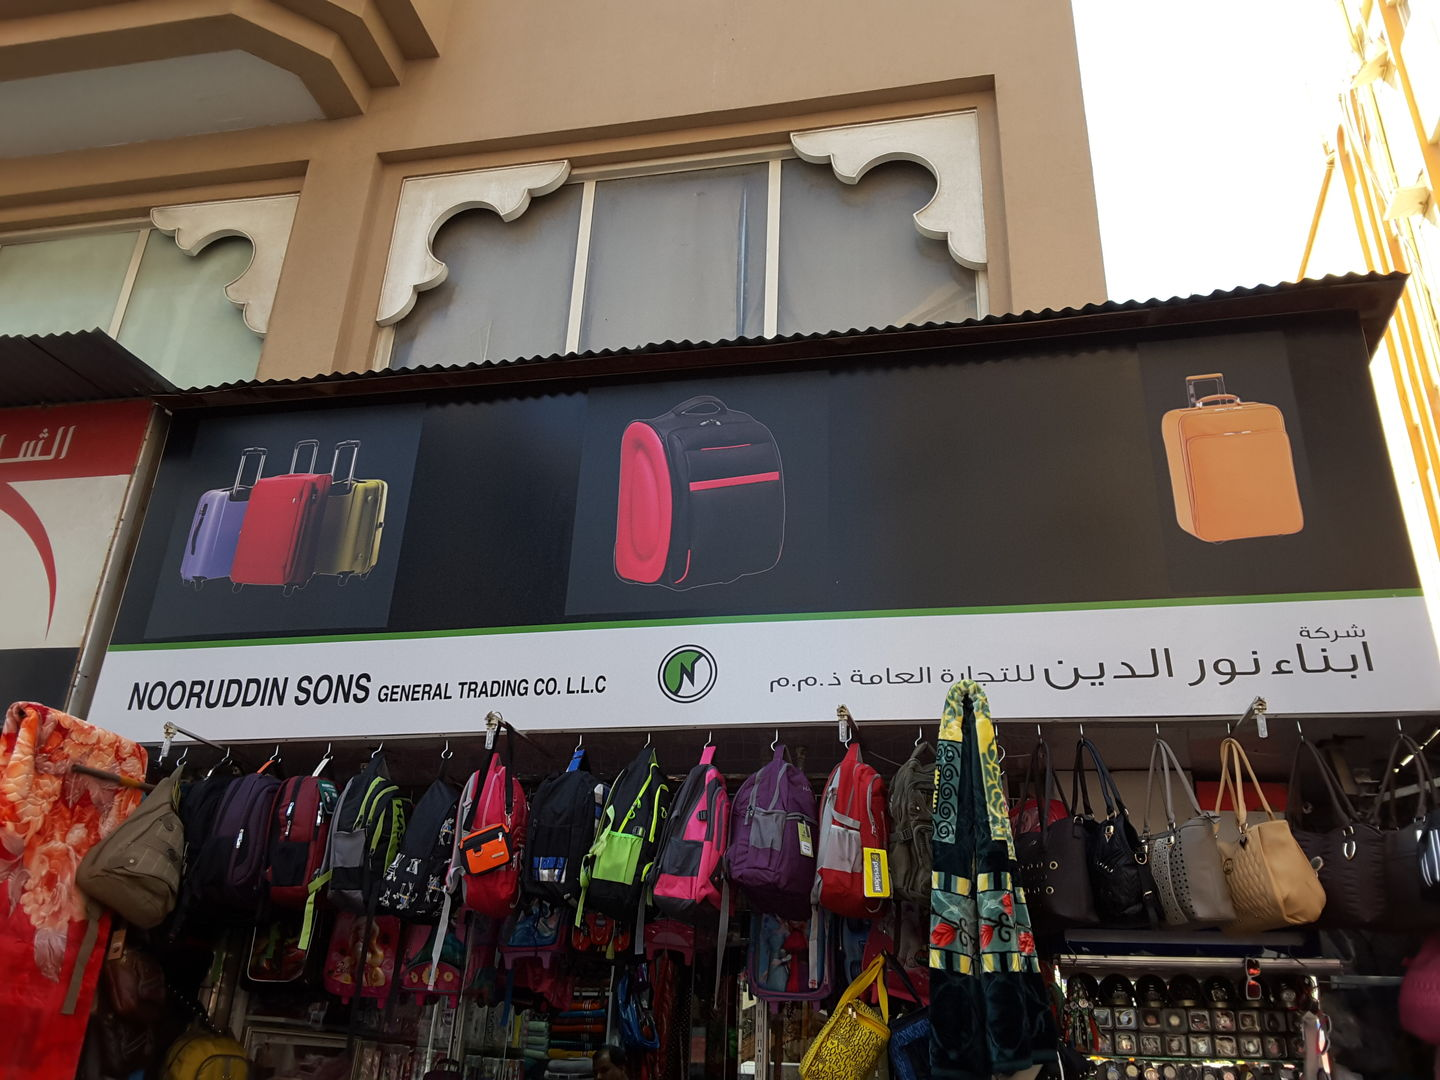 HiDubai-business-nooruddin-sons-general-trading-shopping-luggage-travel-accessories-al-sabkha-dubai-2